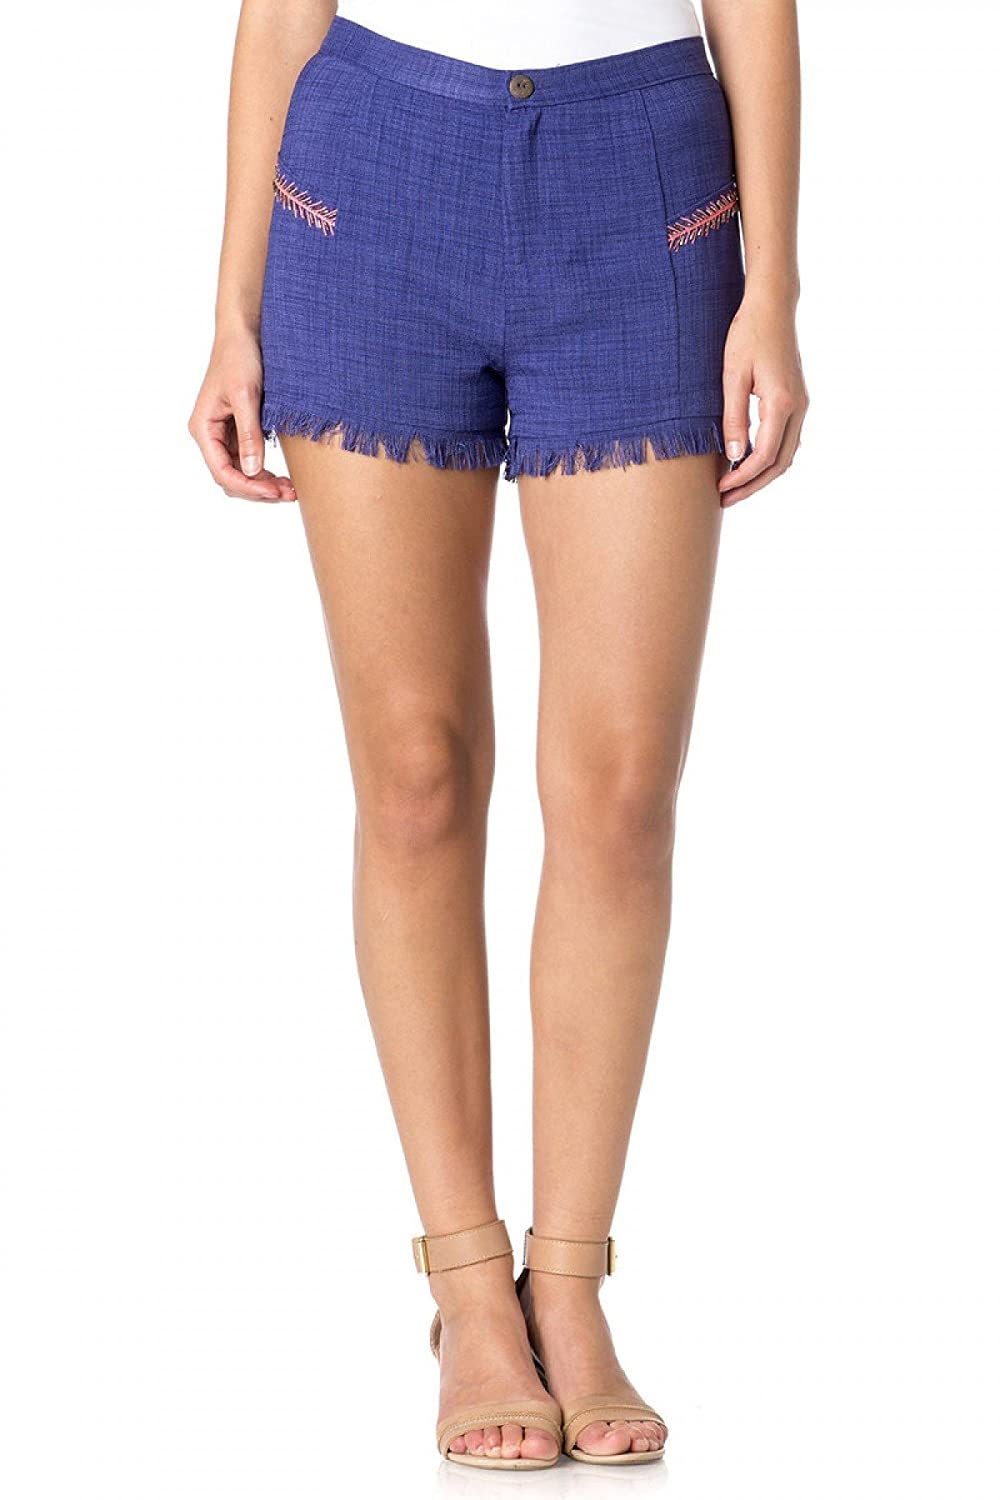 Miss Me MDP184S Blue Embroidered Fringe Shorts